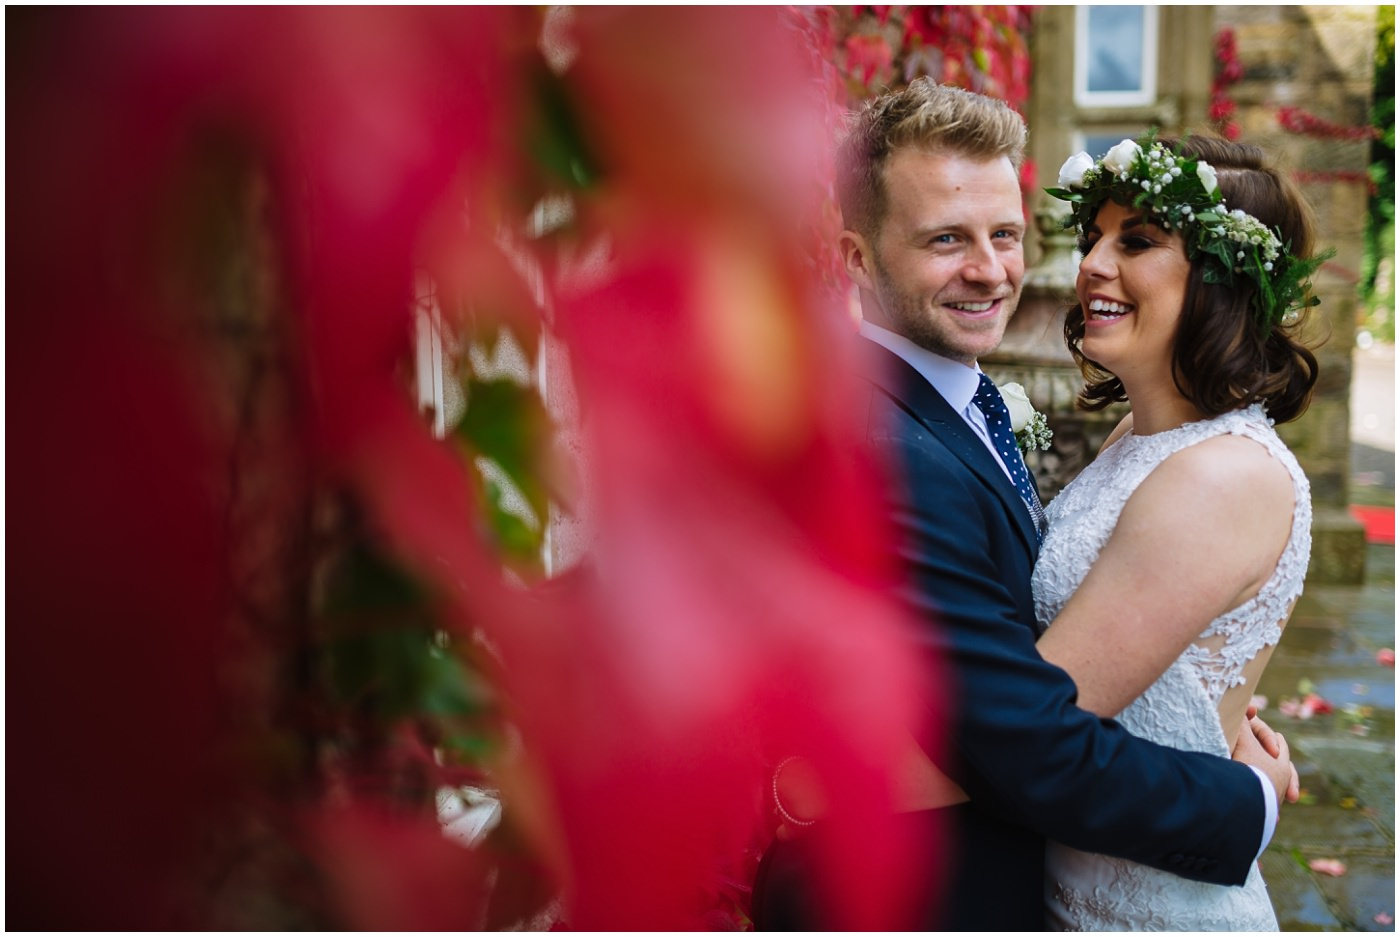 Bride and groom share a moment during portraits at Mitton Hall